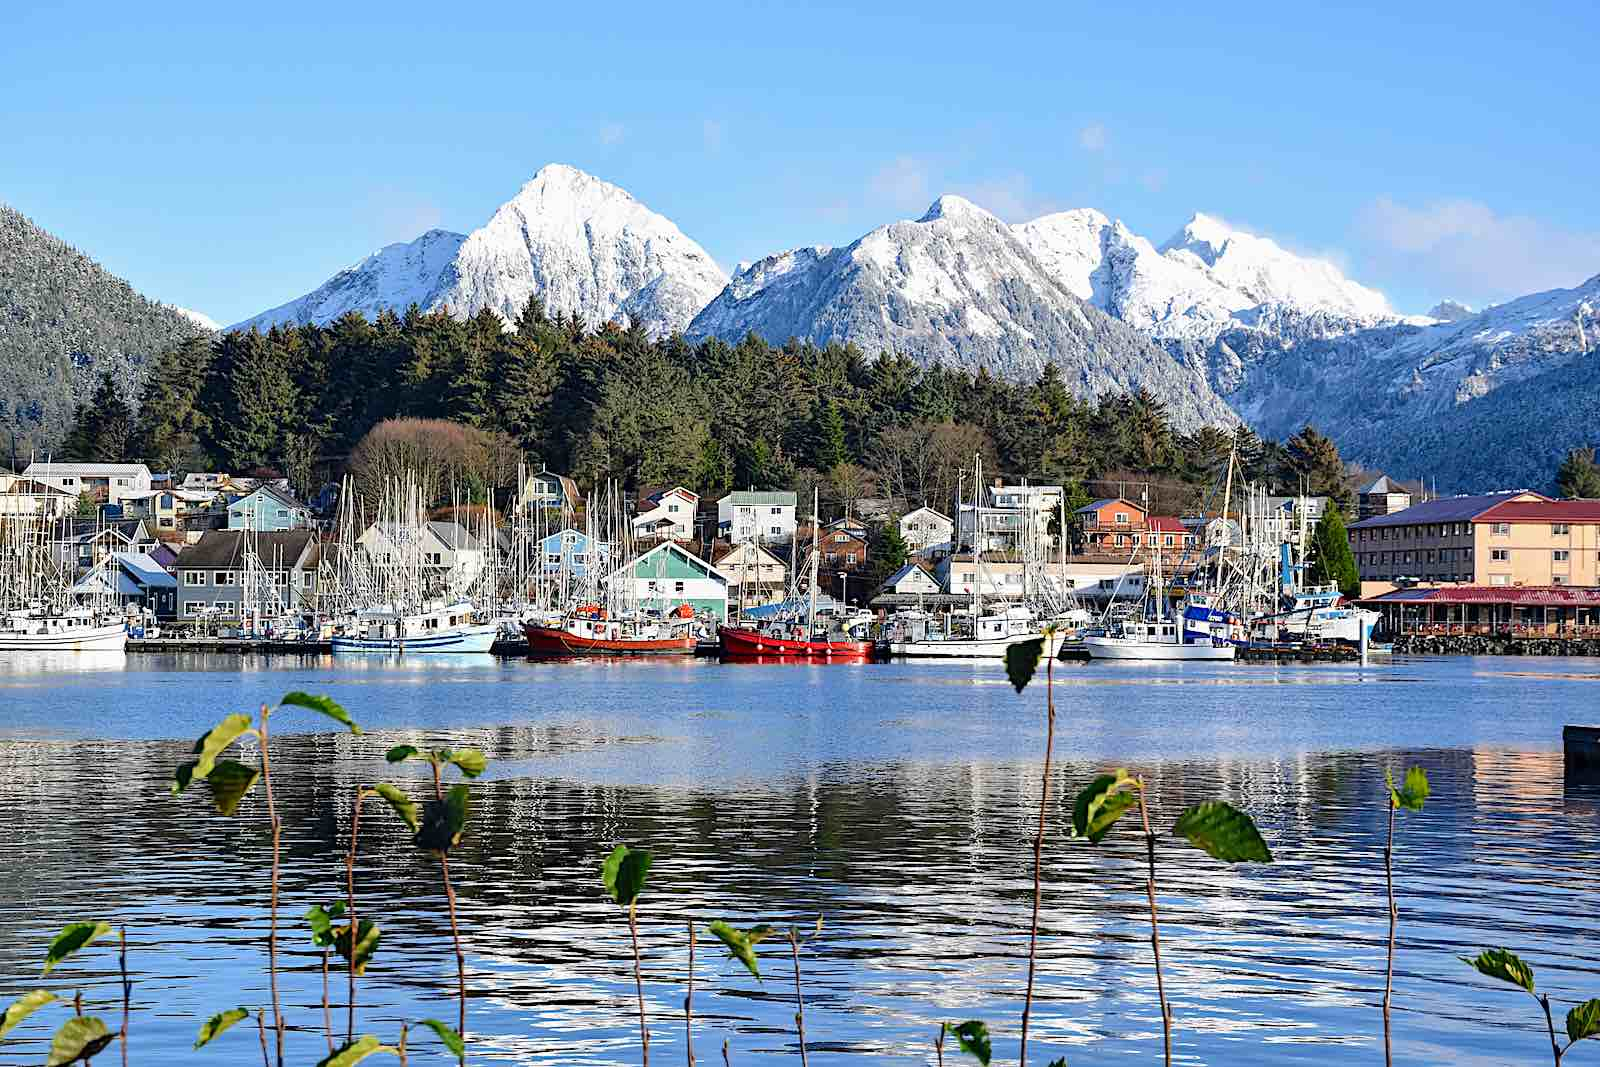 Alaska cruise 2021 could visit Sitka, pictured here with snowcapped mountains